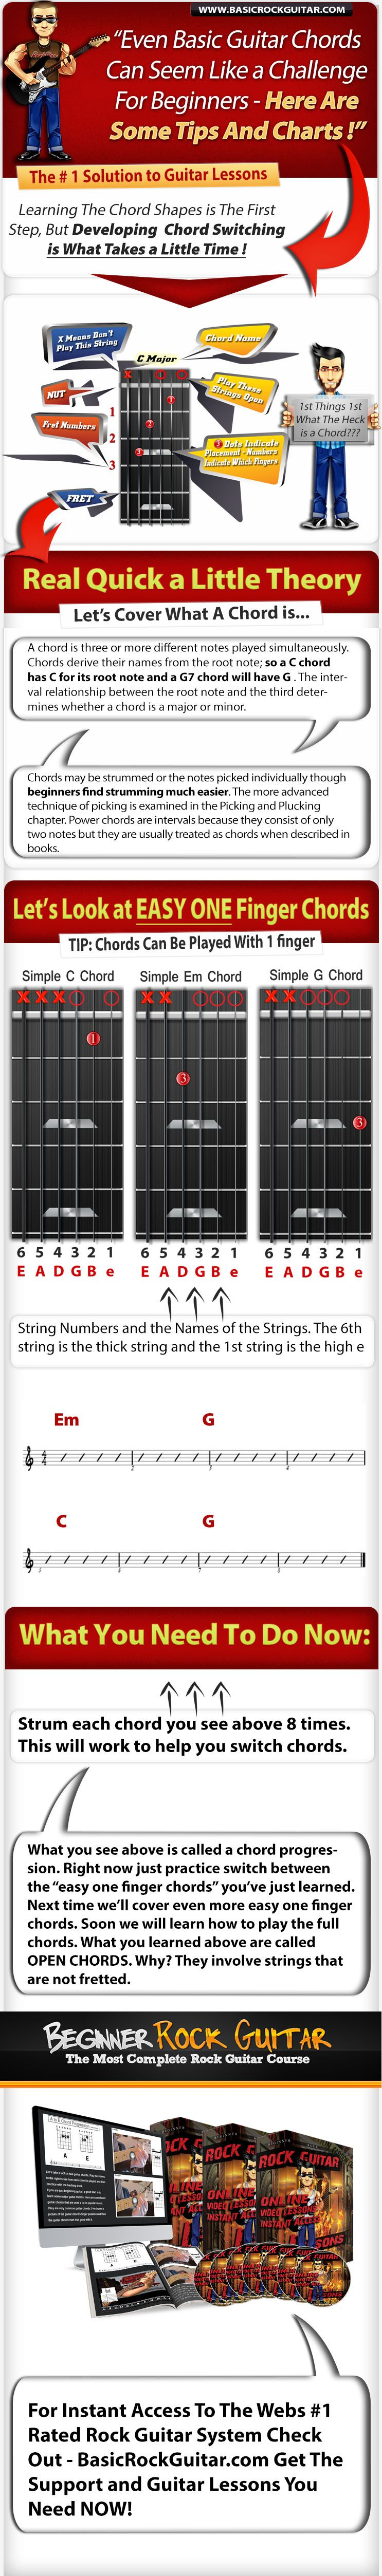 Guitar Lessons For Beginners Beginners Can Learn How To Switch